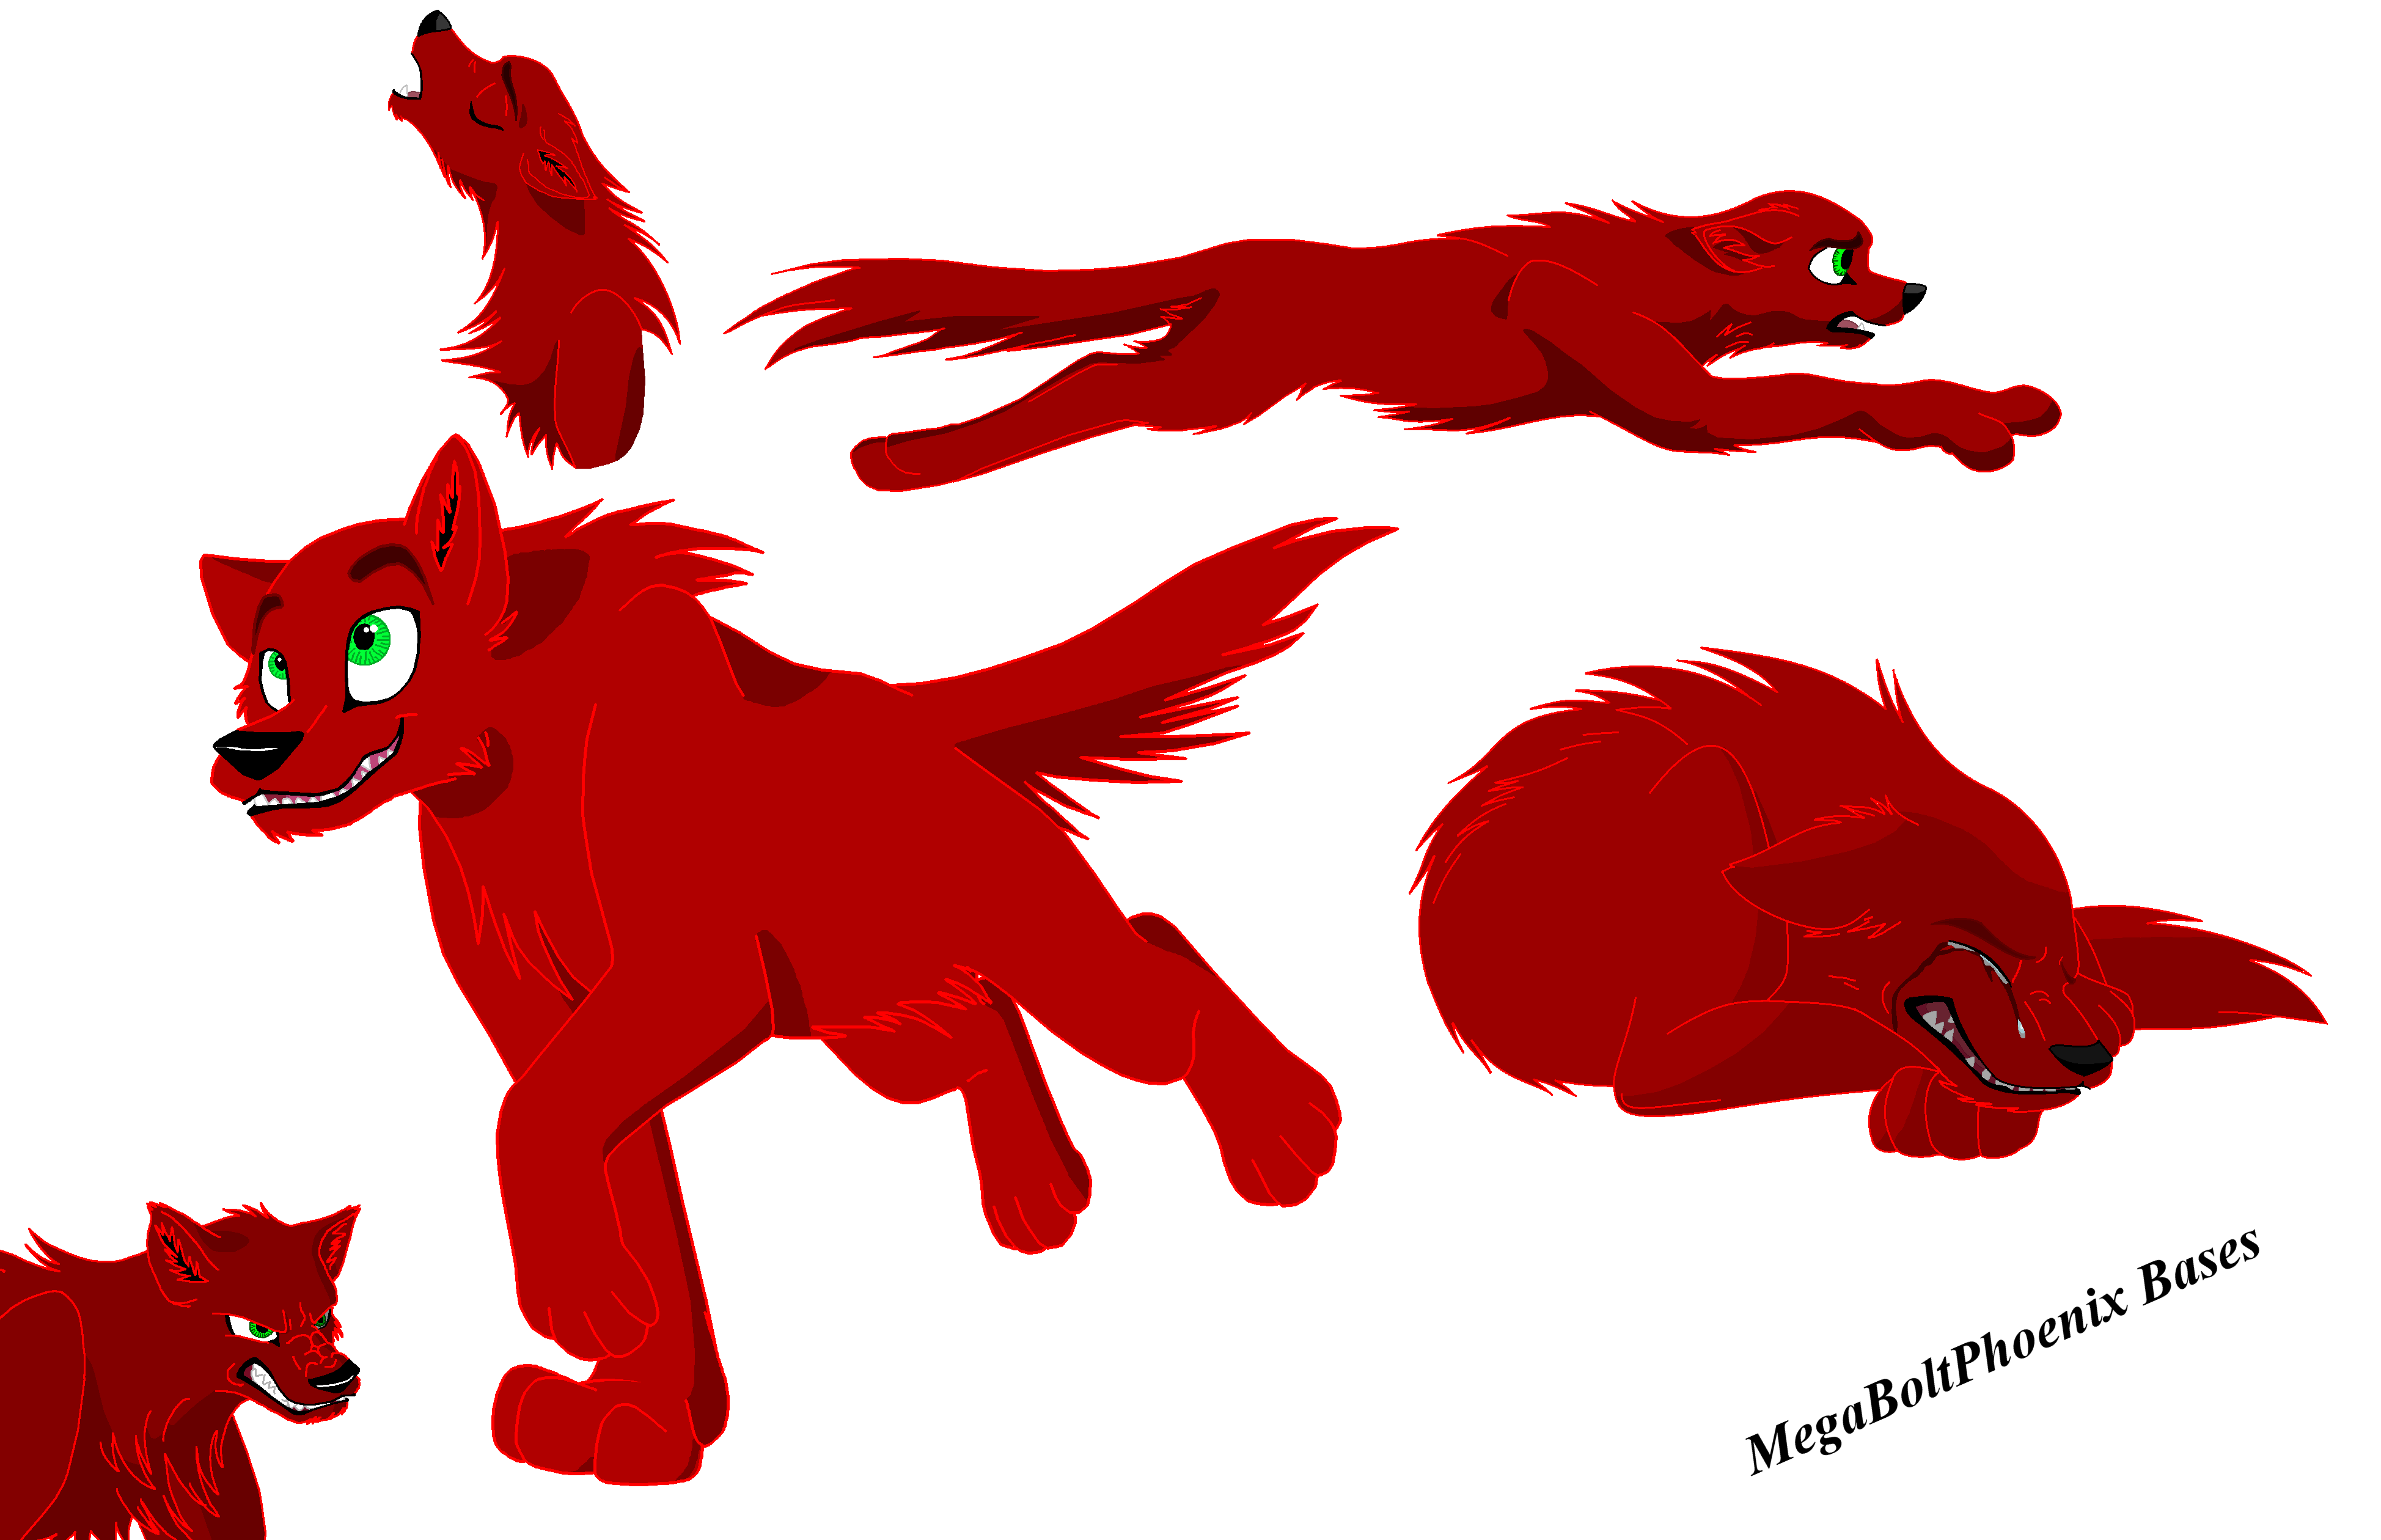 Wolves clipart dragon. Advanced wolf bases school